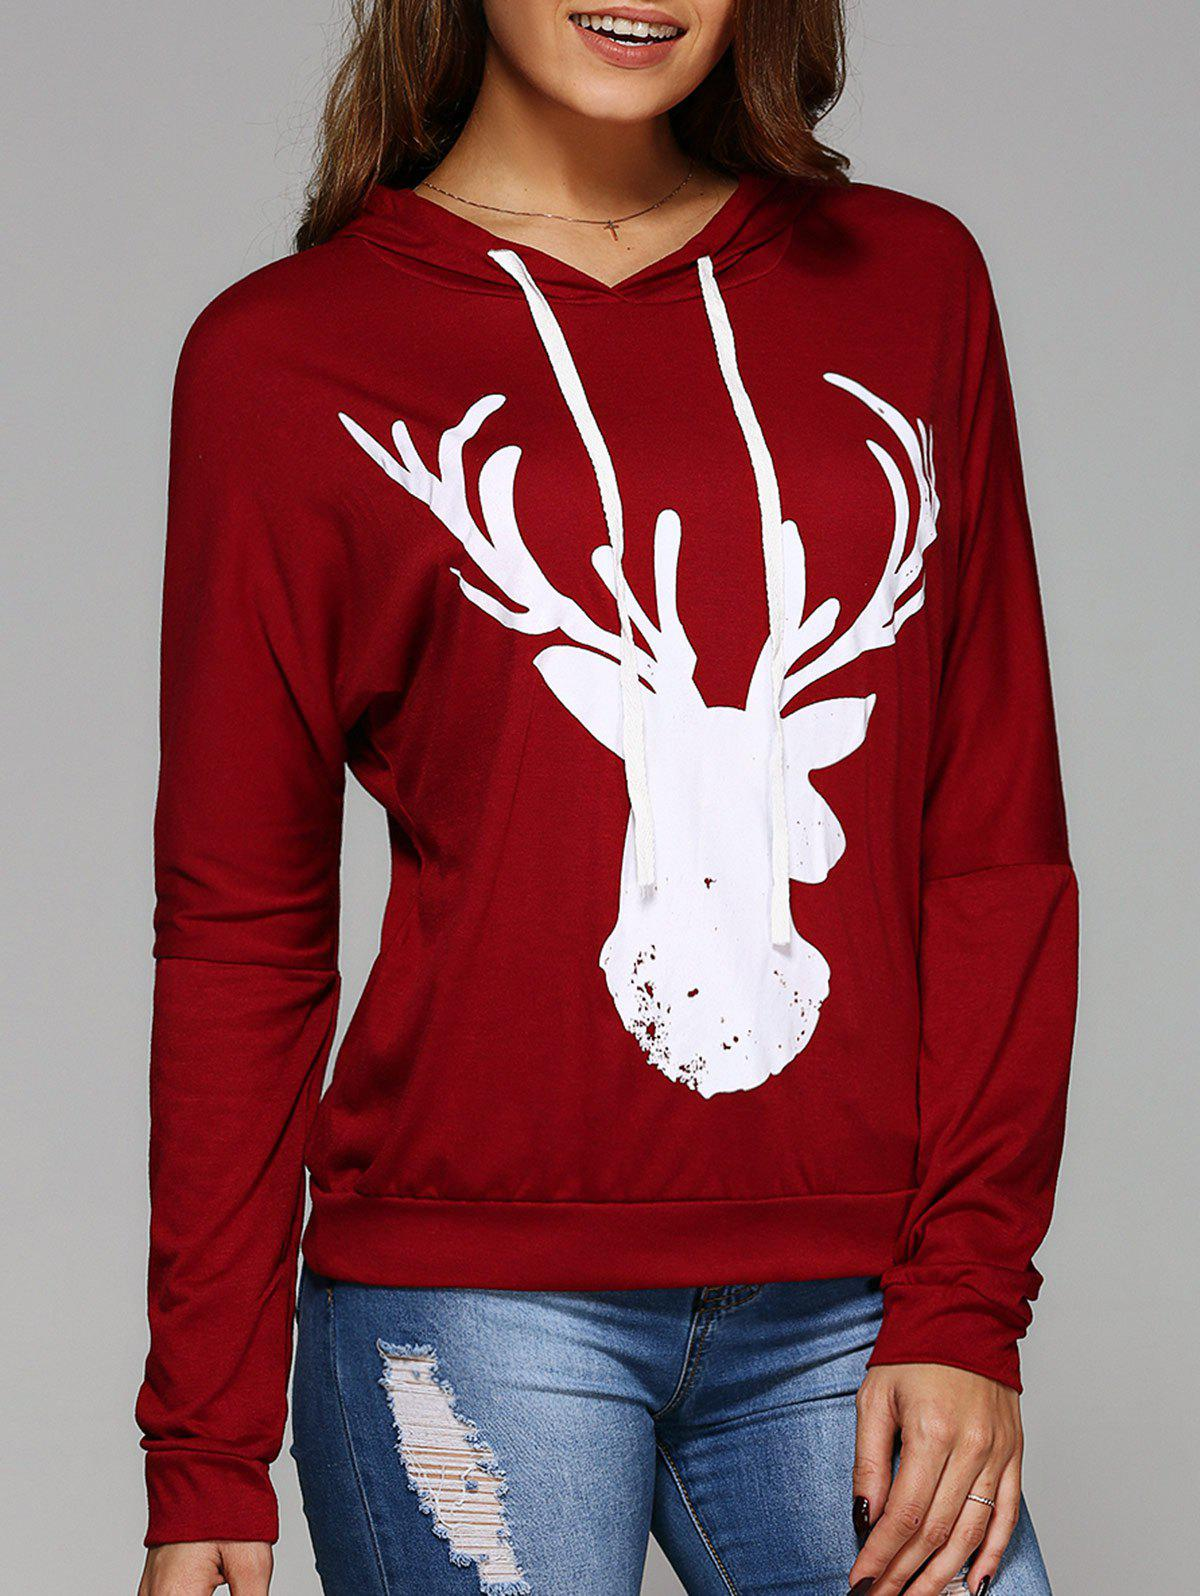 Long Sleeve Deer Print Christmas Hooded T-ShirtWOMEN<br><br>Size: L; Color: RED; Material: Cotton Blends; Sleeve Length: Full; Collar: Hooded; Style: Casual; Embellishment: 3D Print; Pattern Type: Animal; Season: Fall,Summer; Weight: 0.252kg; Package Contents: 1 x T-Shirt;